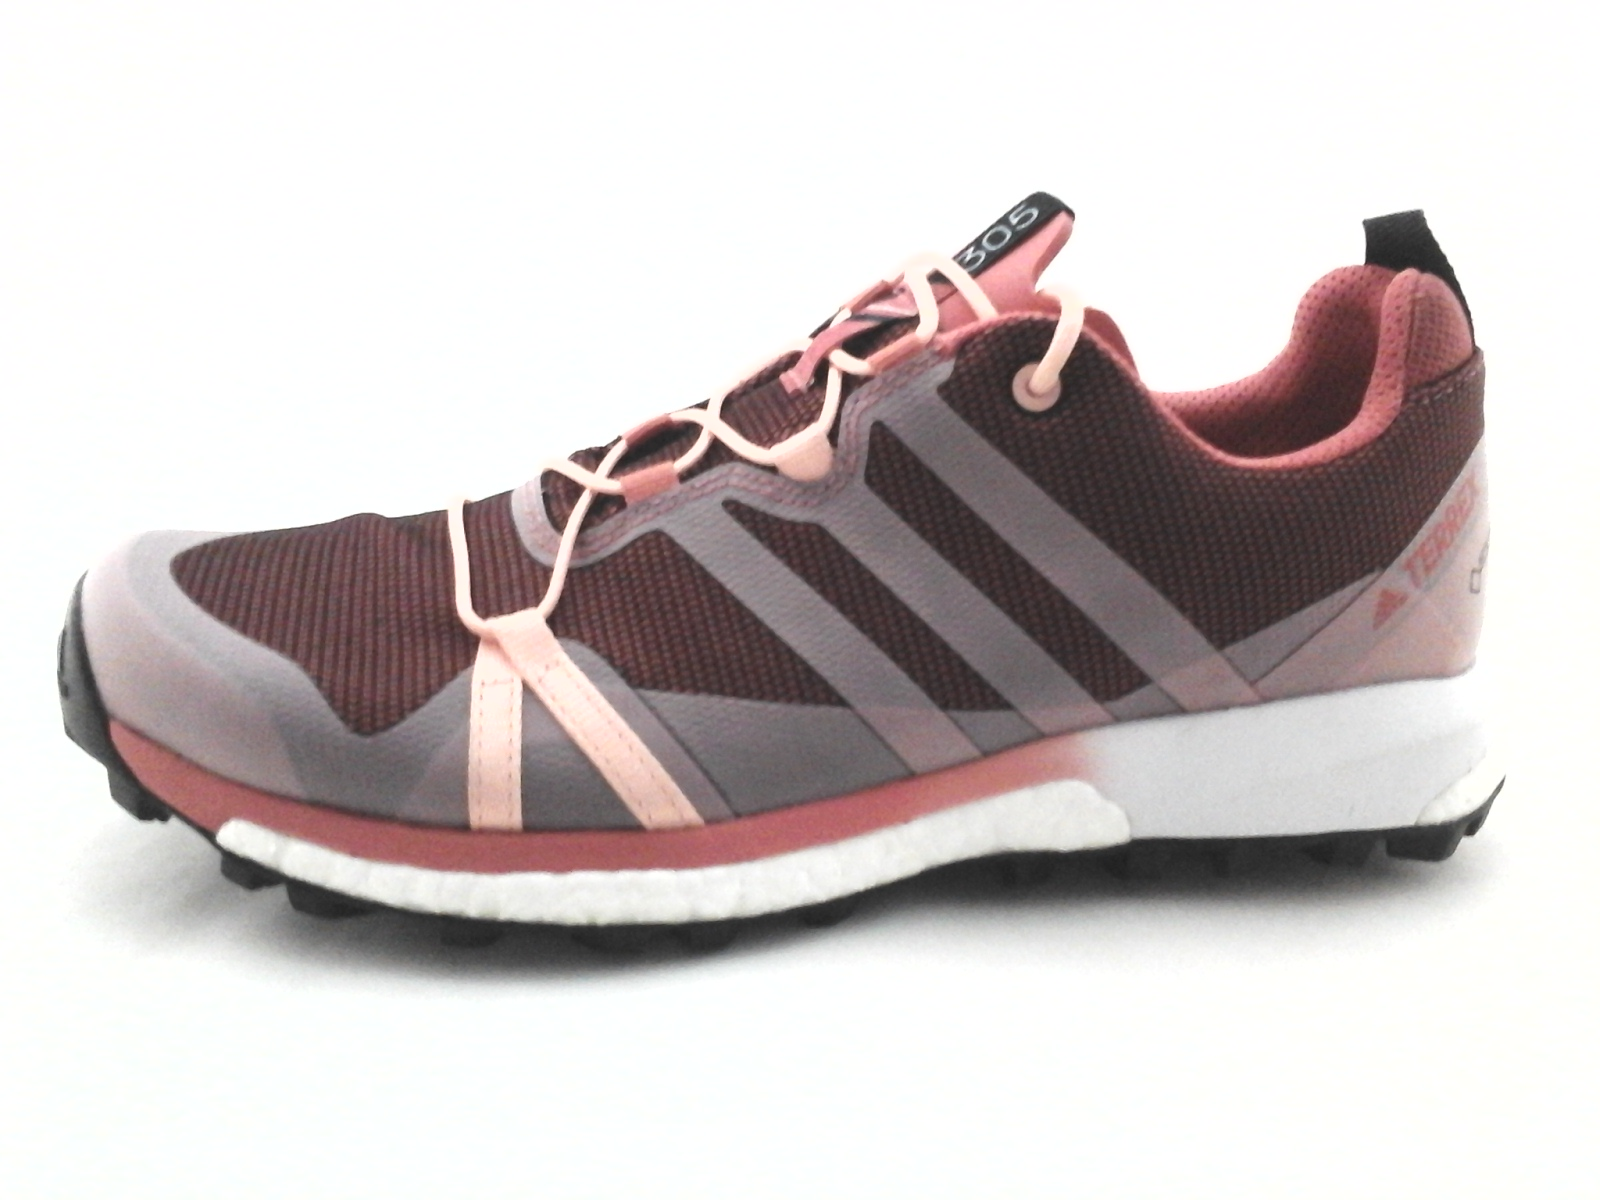 timeless design uk store best supplier Details about Adidas TERREX Agravic Boost 305 GTX Hiking Shoes Coral Pink  Gray BB0970 US 10